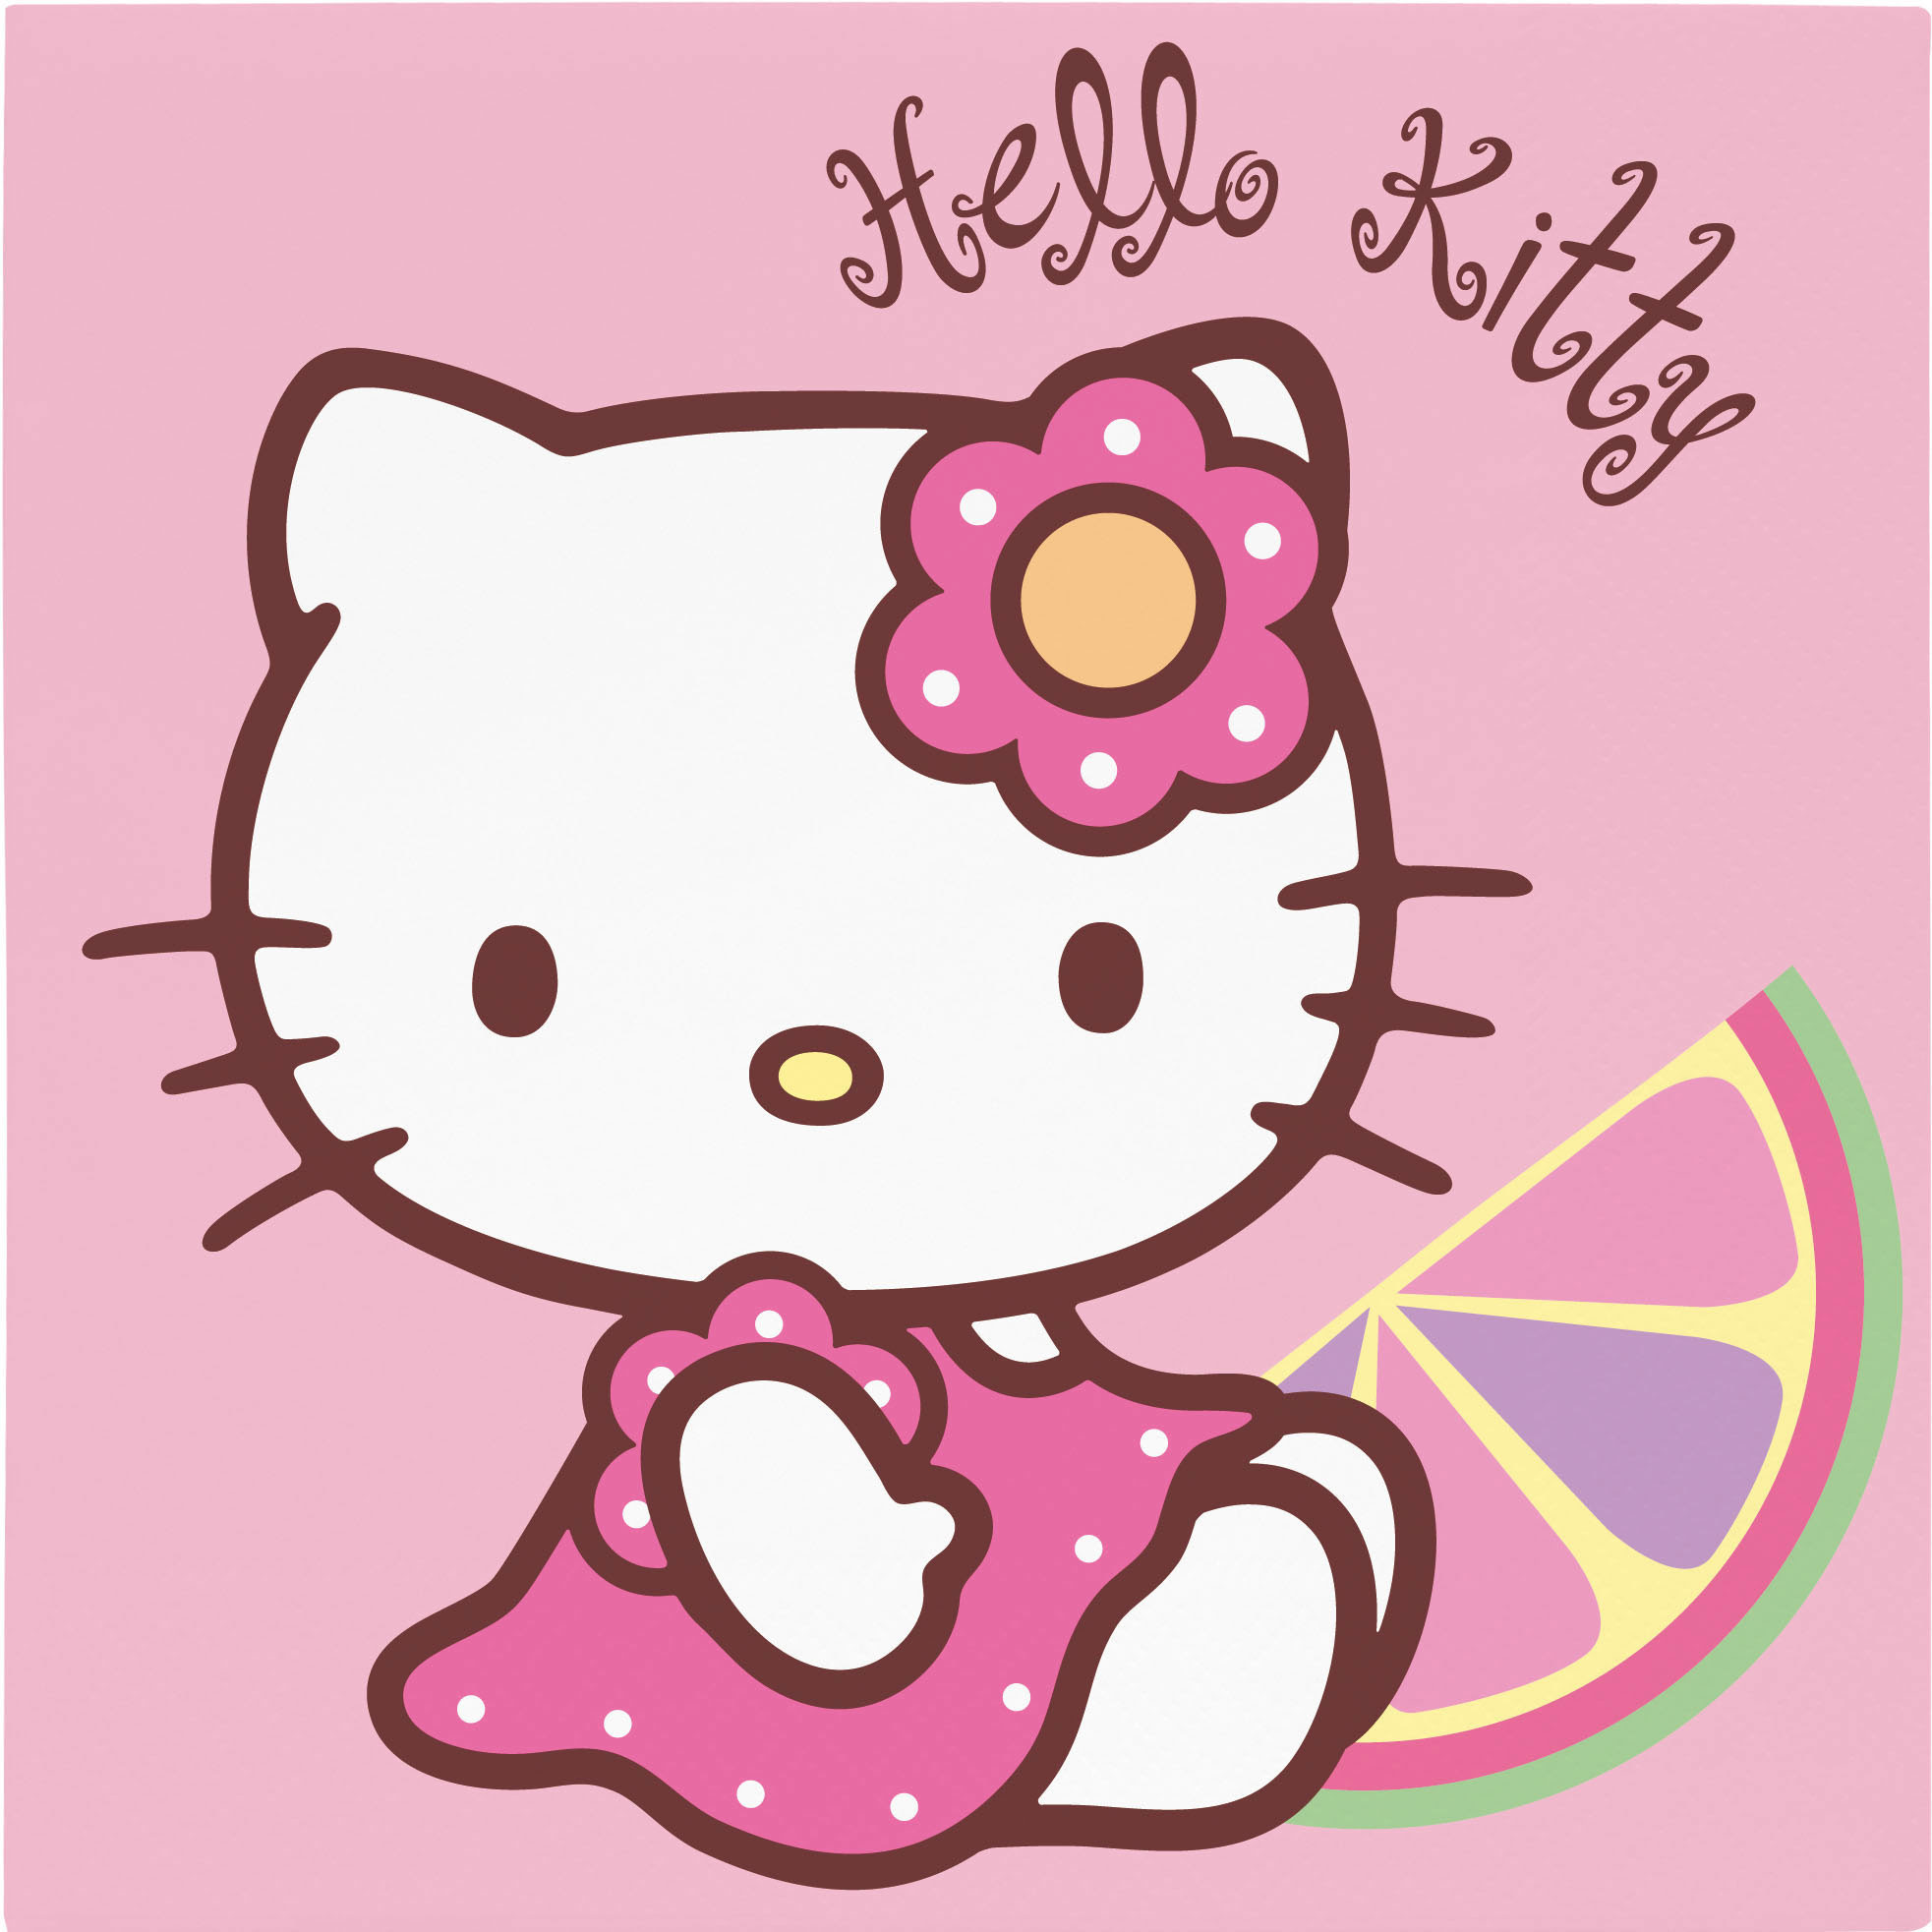 Hello Kitty Wallpaper Hd For Iphone 6